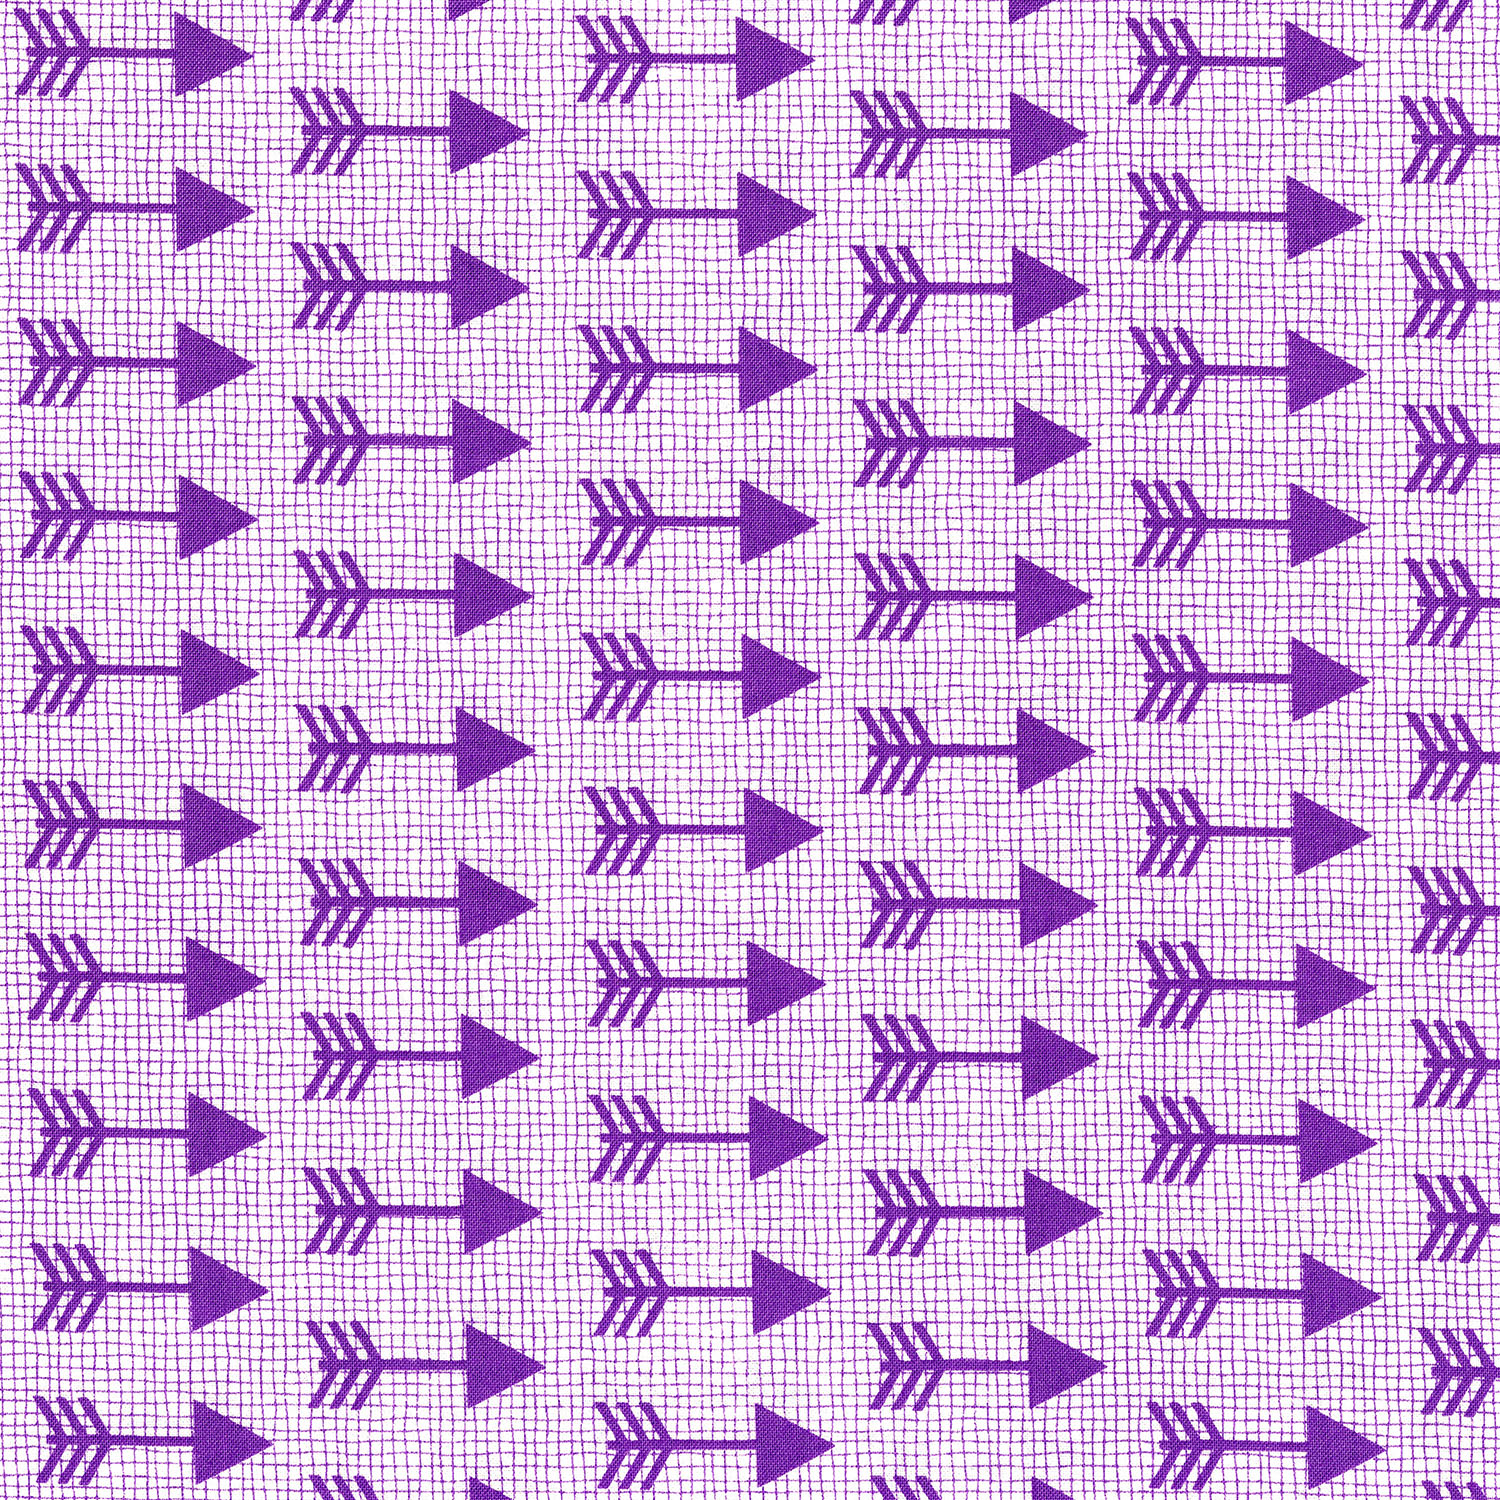 3335-004  ARROWS-PURPLE